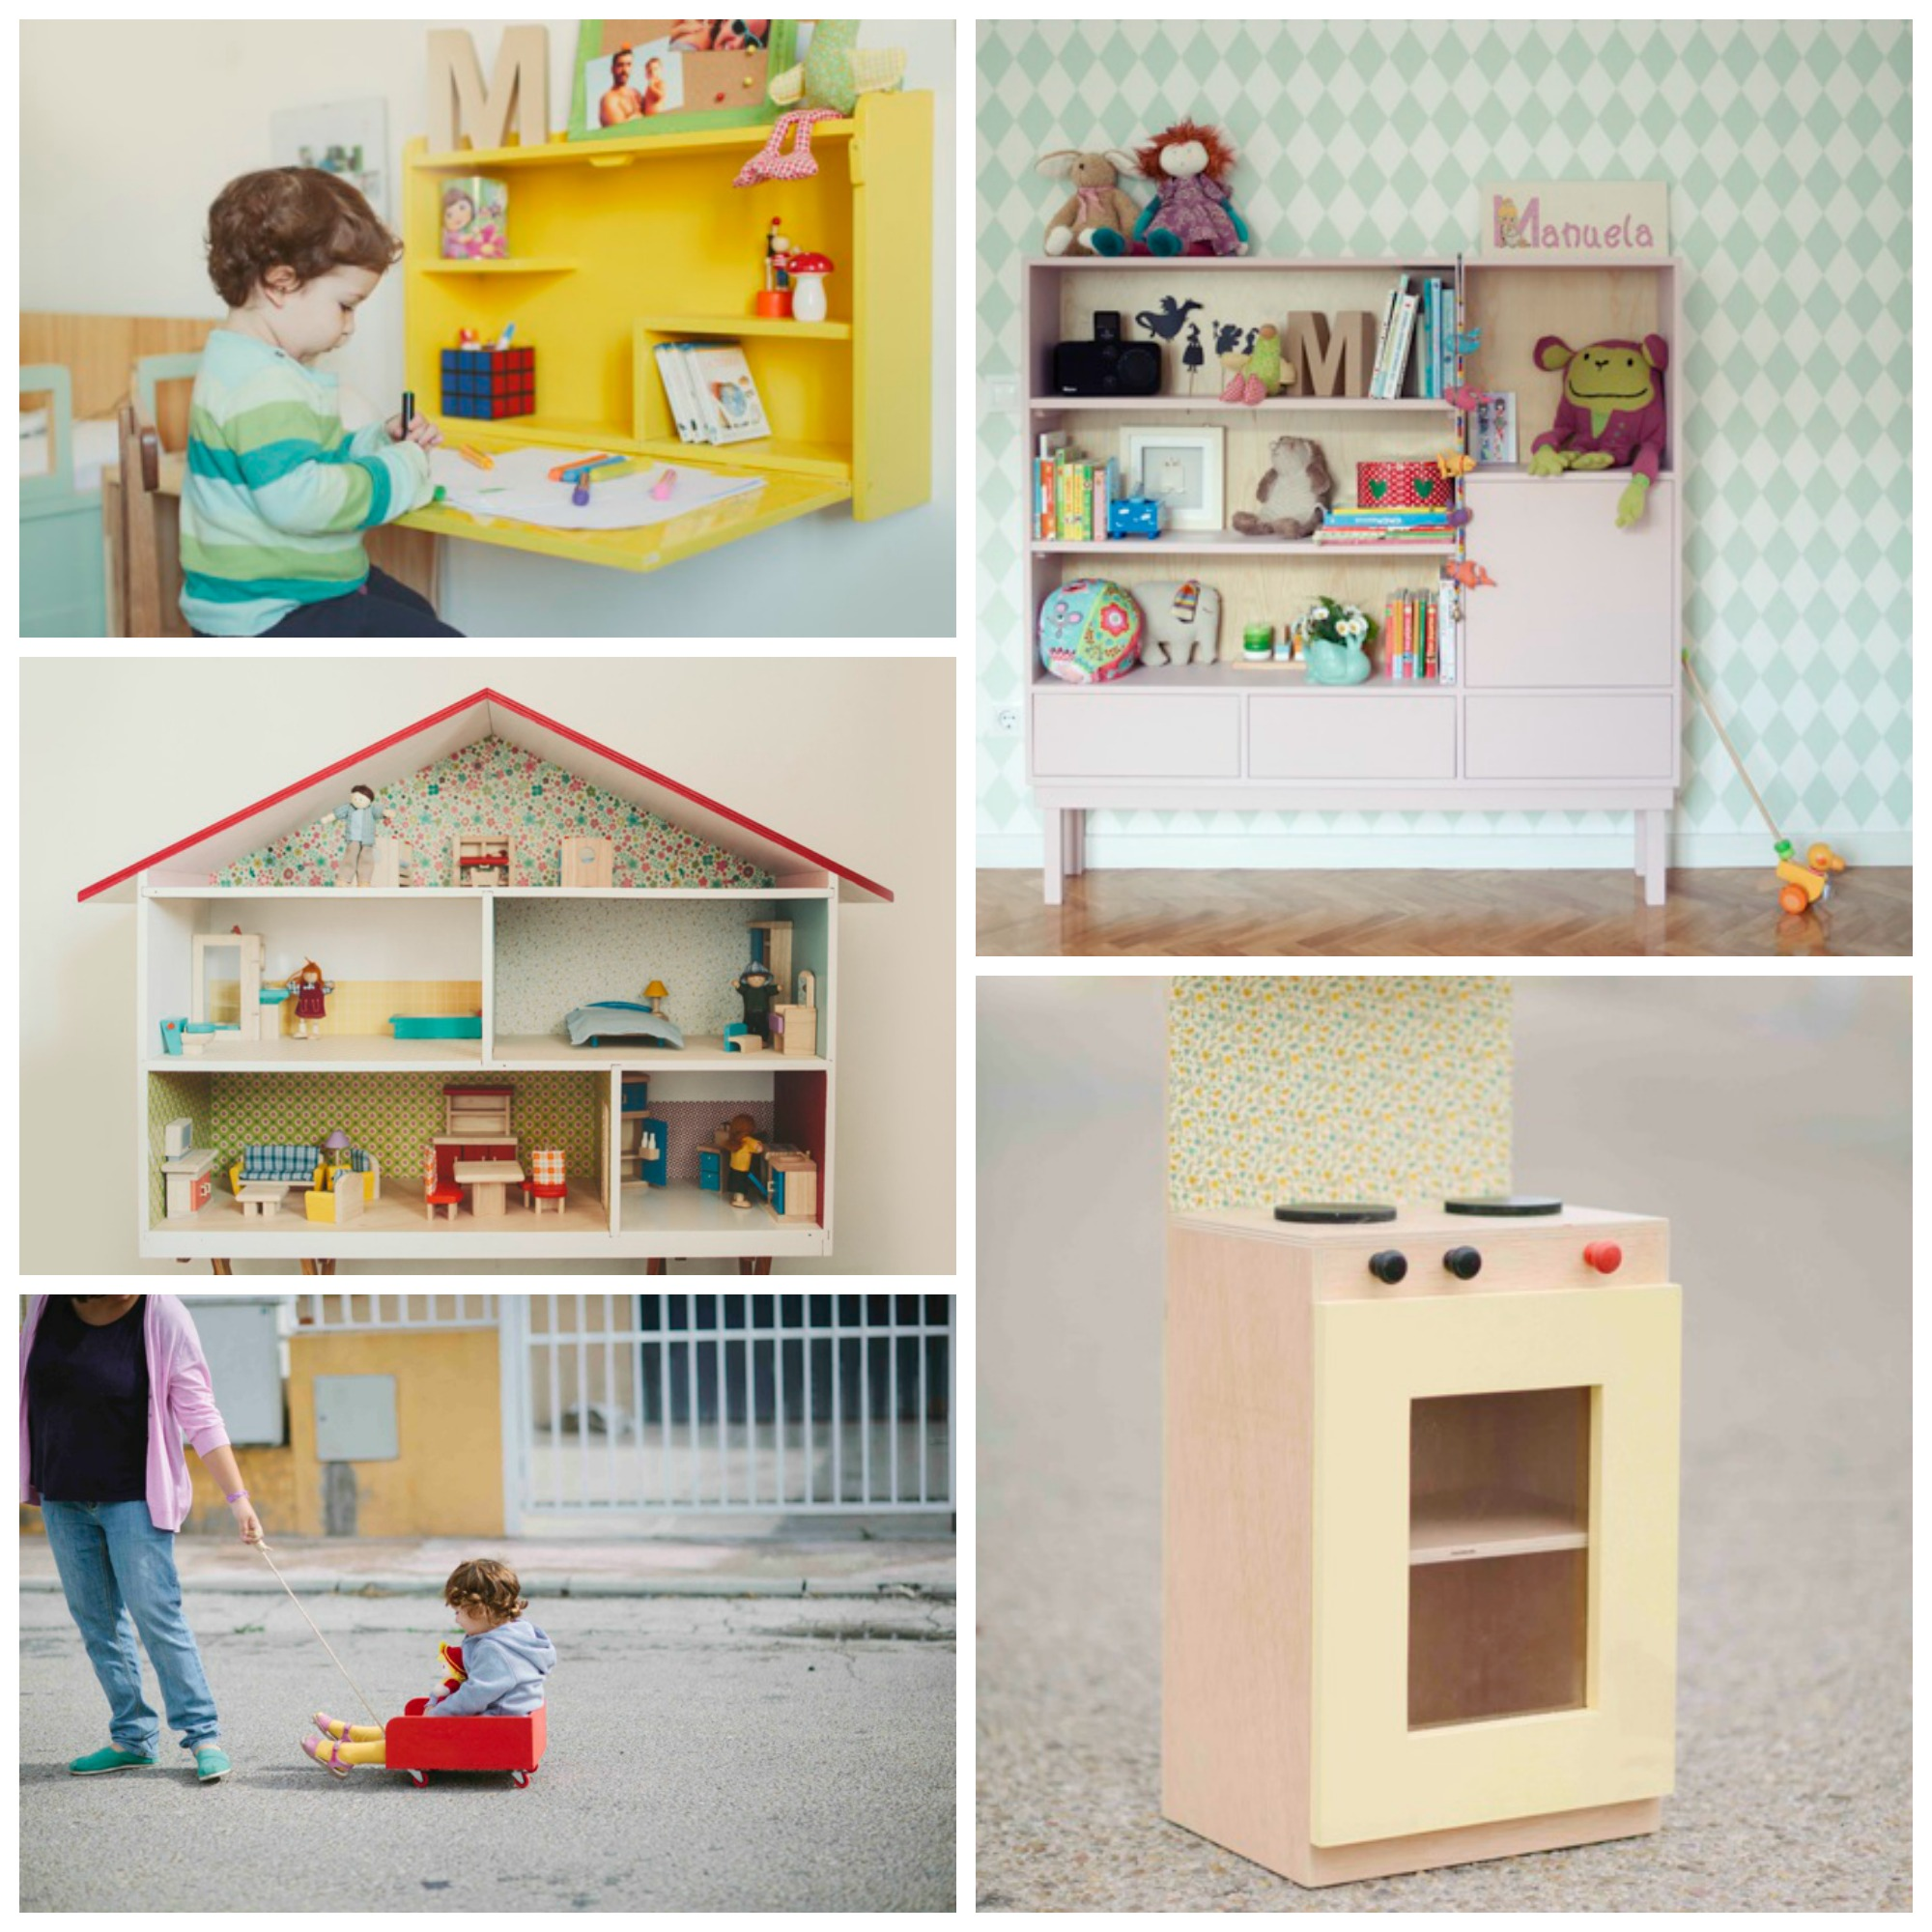 Picapino: muebles infantiles a medida - Chiquitinos